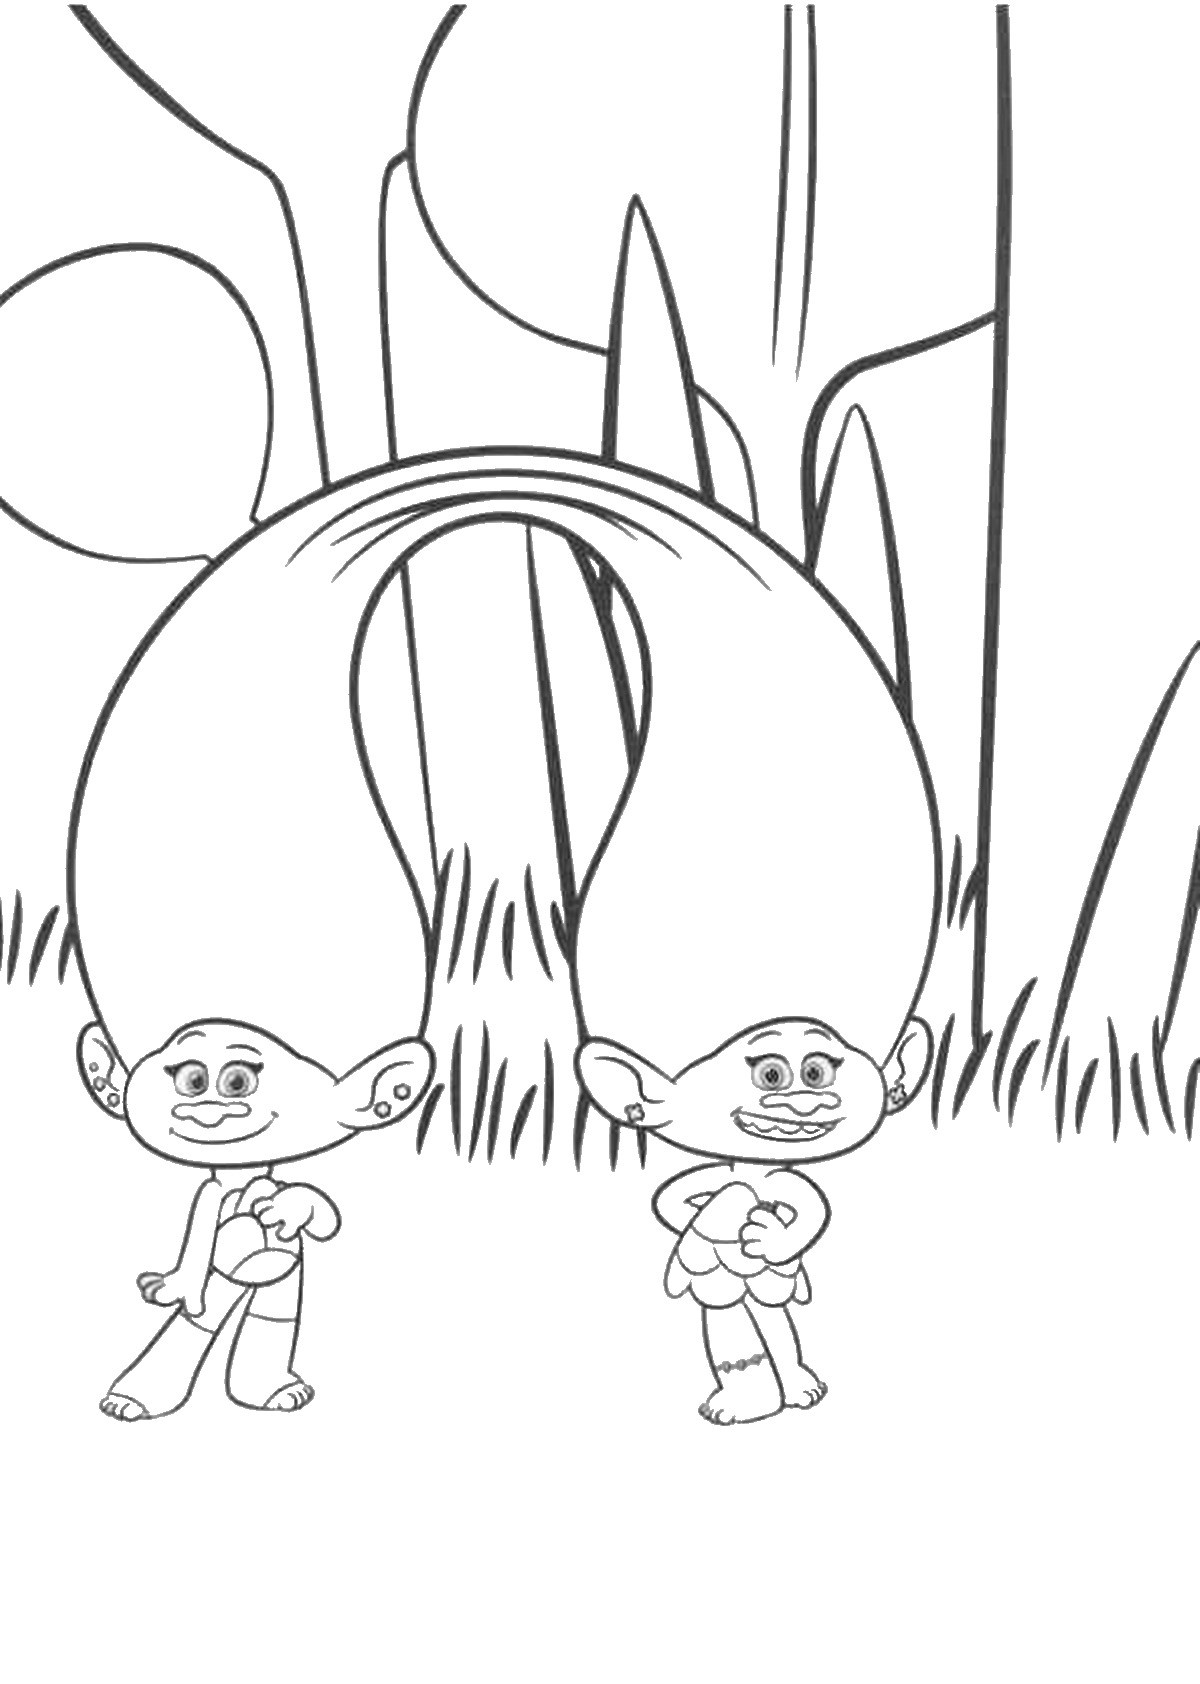 trolls-twins-coloring-pages-of-trolls-twins-coloring-pages Trolls Twins Coloring Pages Cartoon